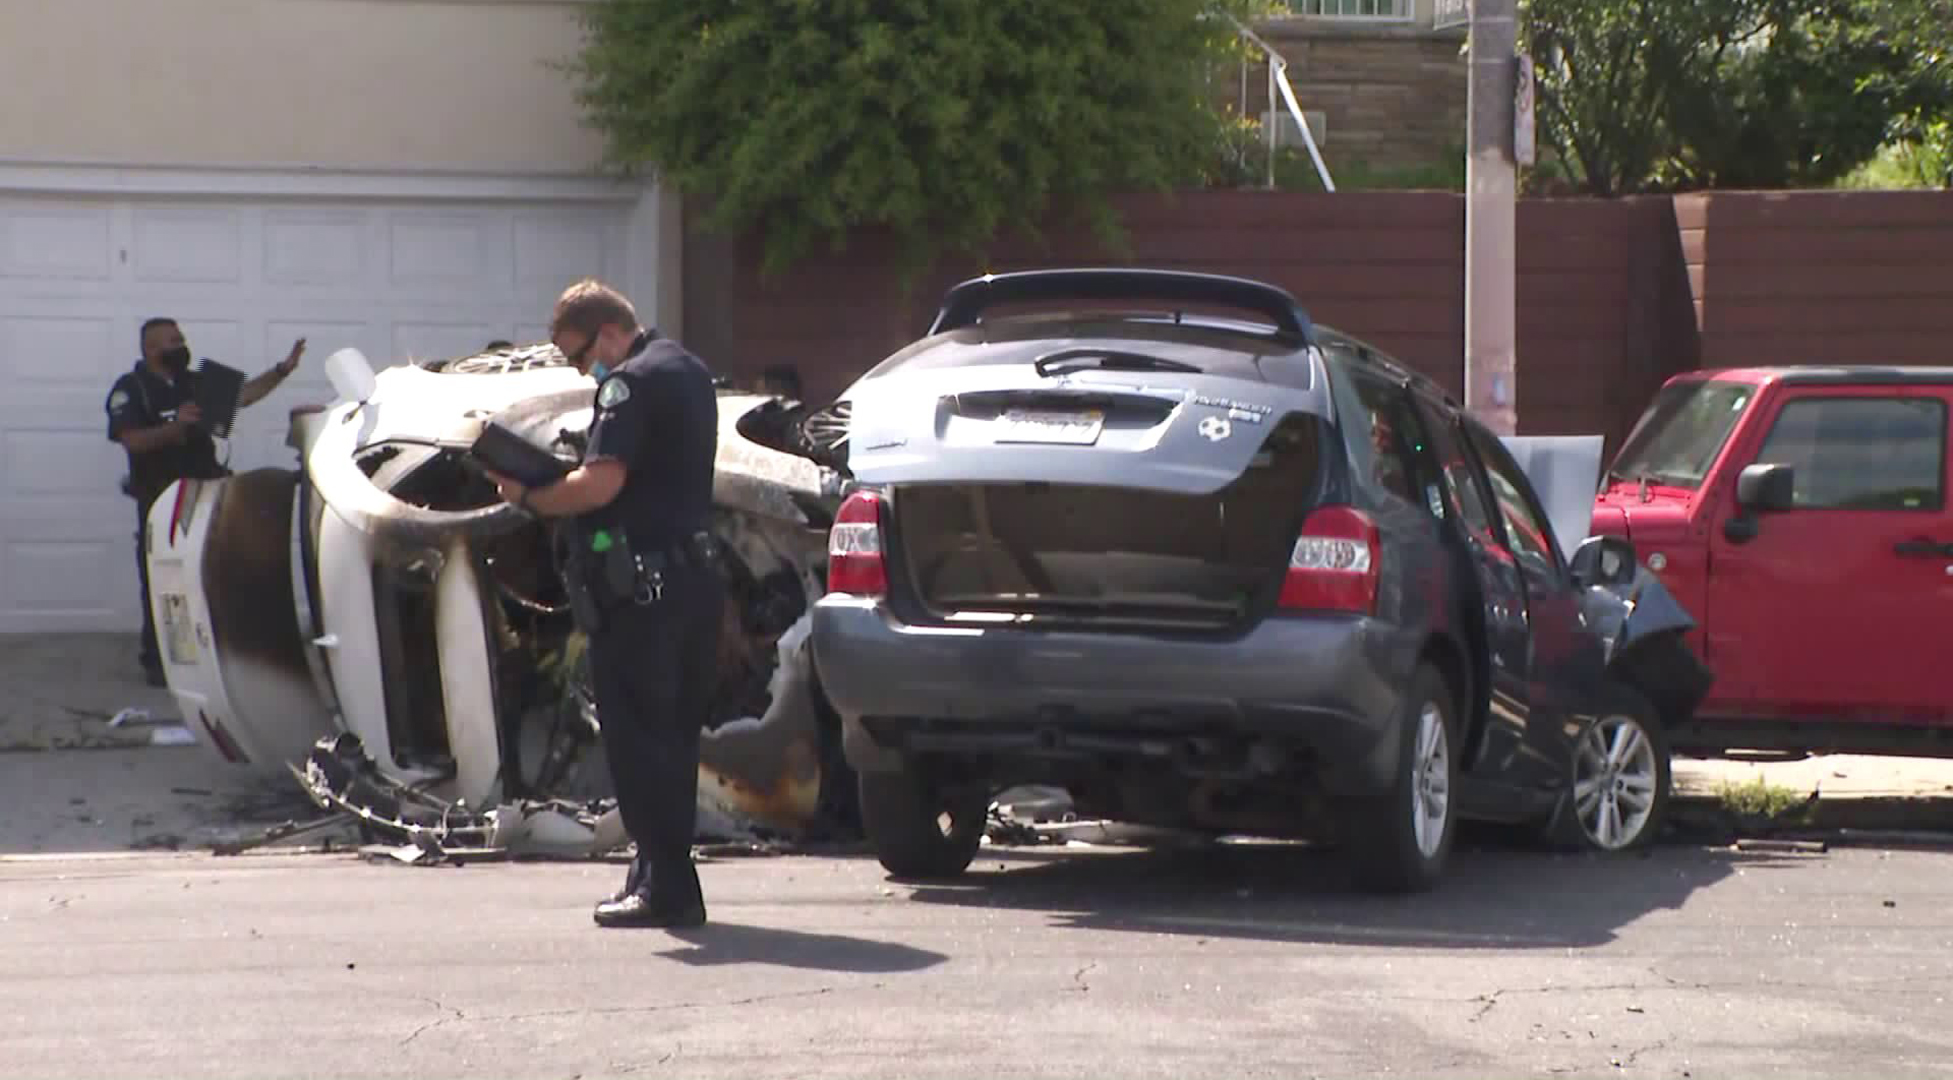 LAPD officials investigate a crash scene in the Westlake District on June 12, 2020. (KTLA)